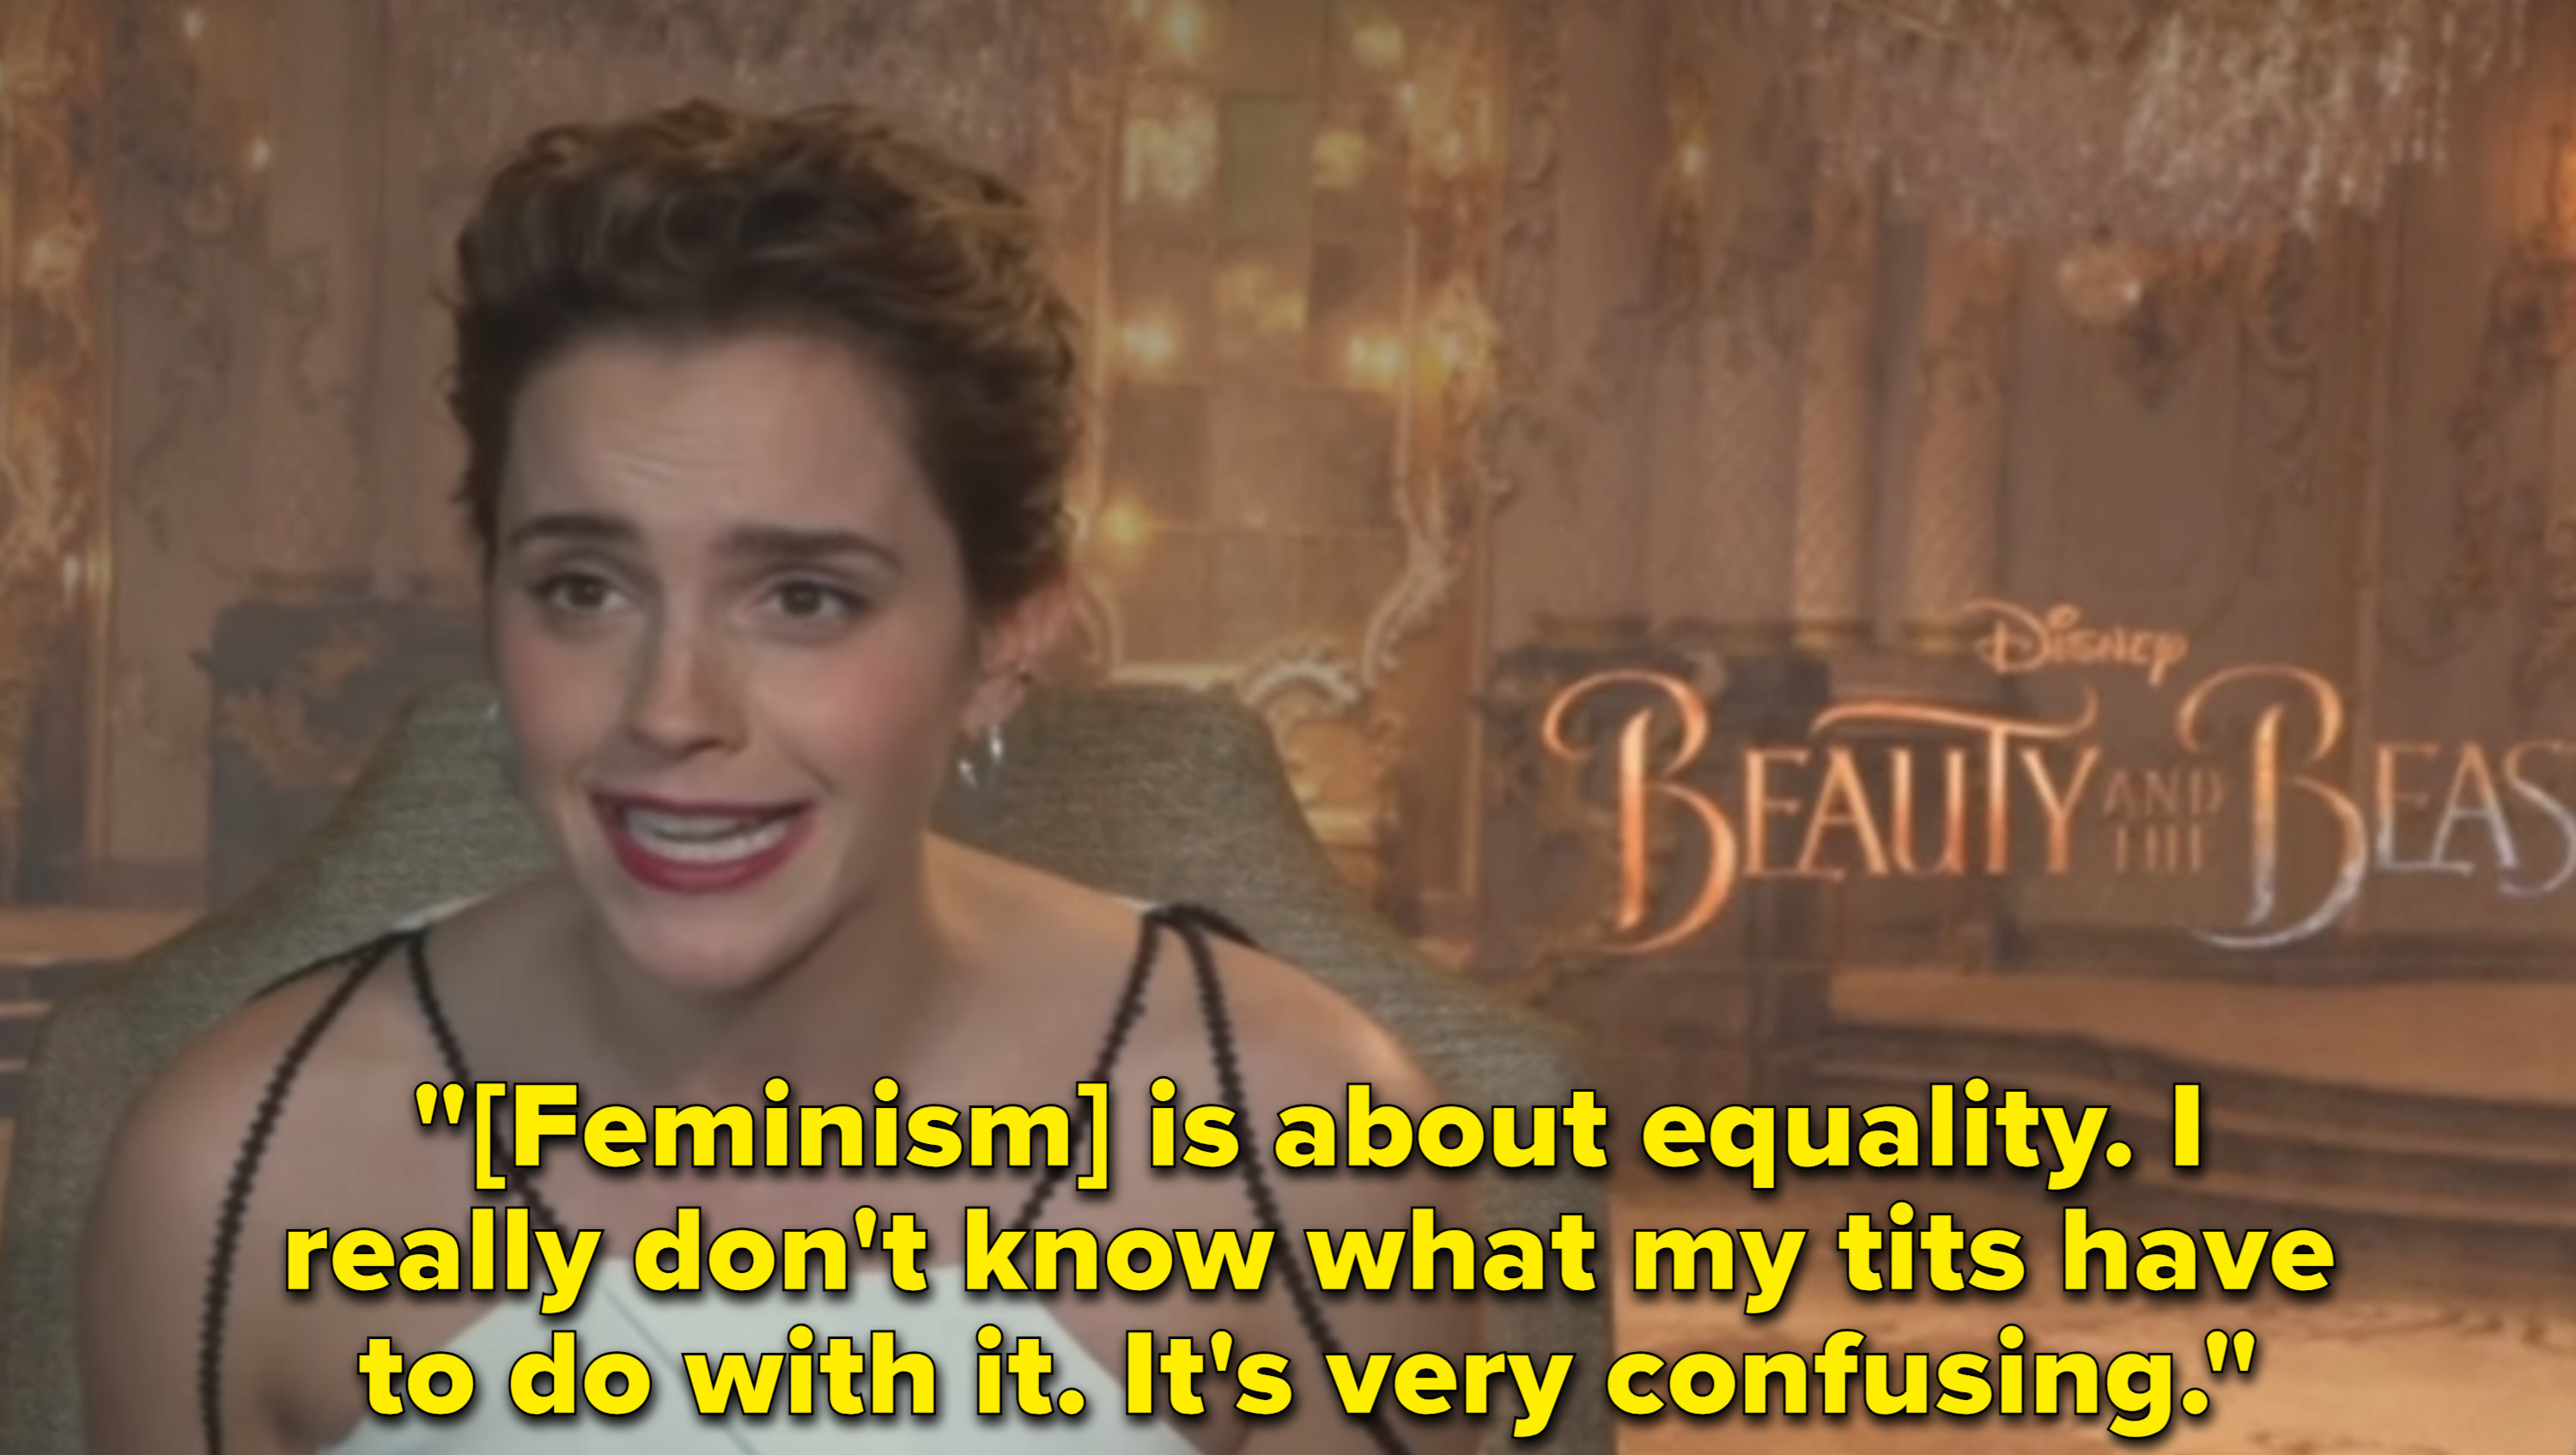 Emma Watson looks stunned as she explains that her topless photoshoot had nothing to do with her feminist activism.